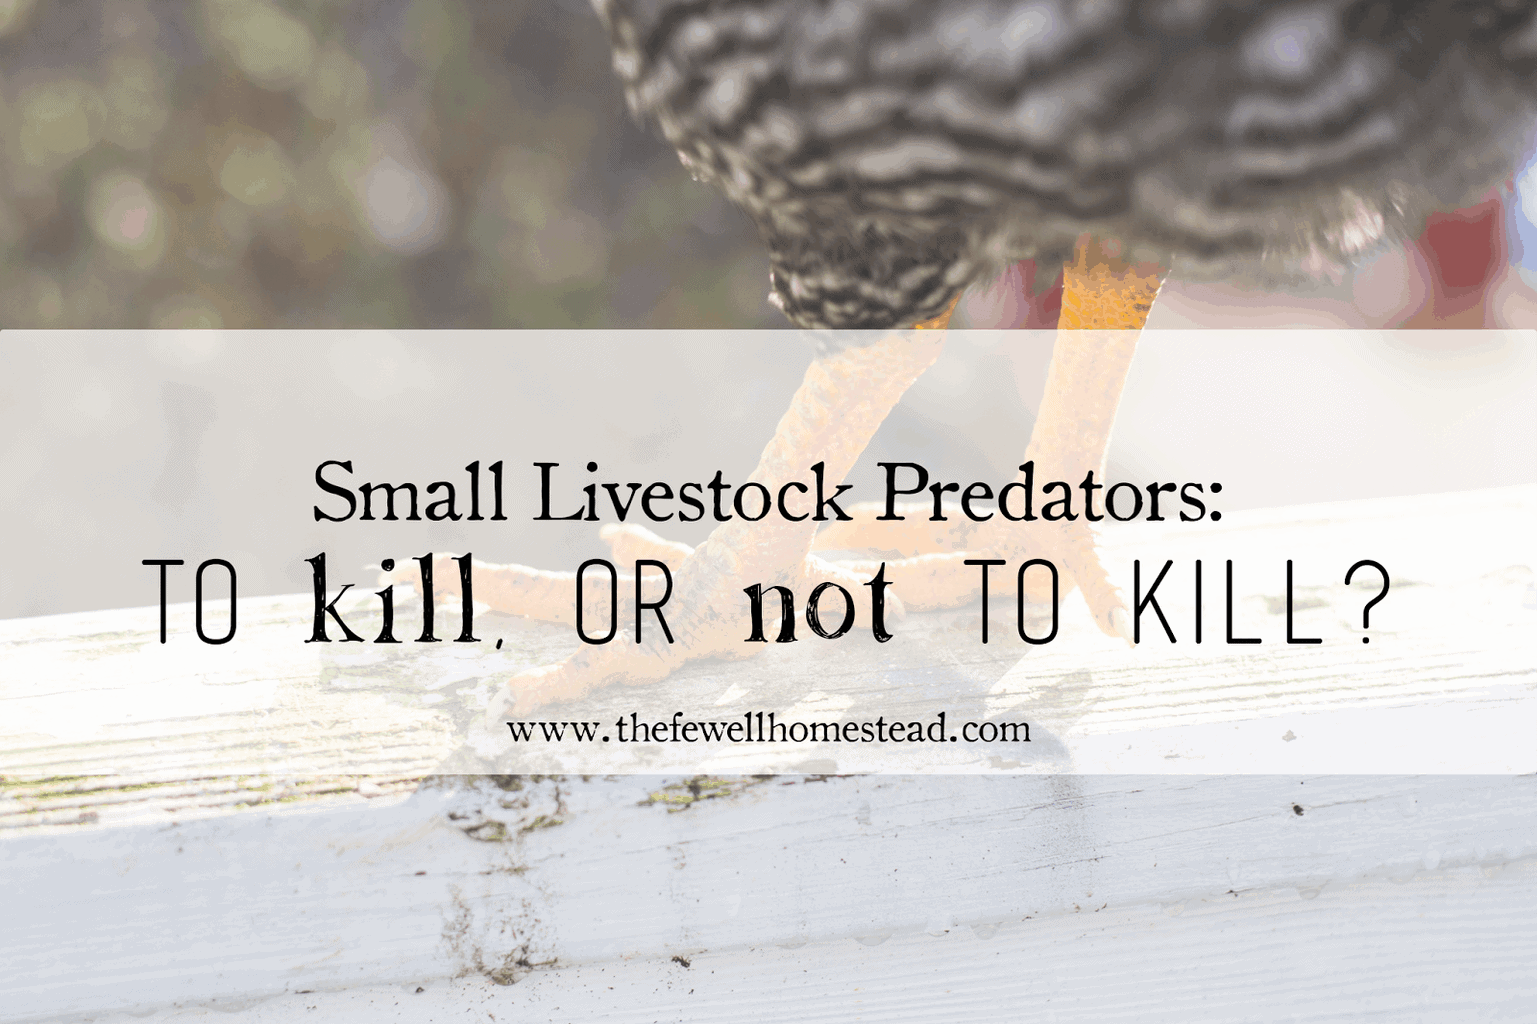 Small Livestock Predators: To kill, or not to kill?